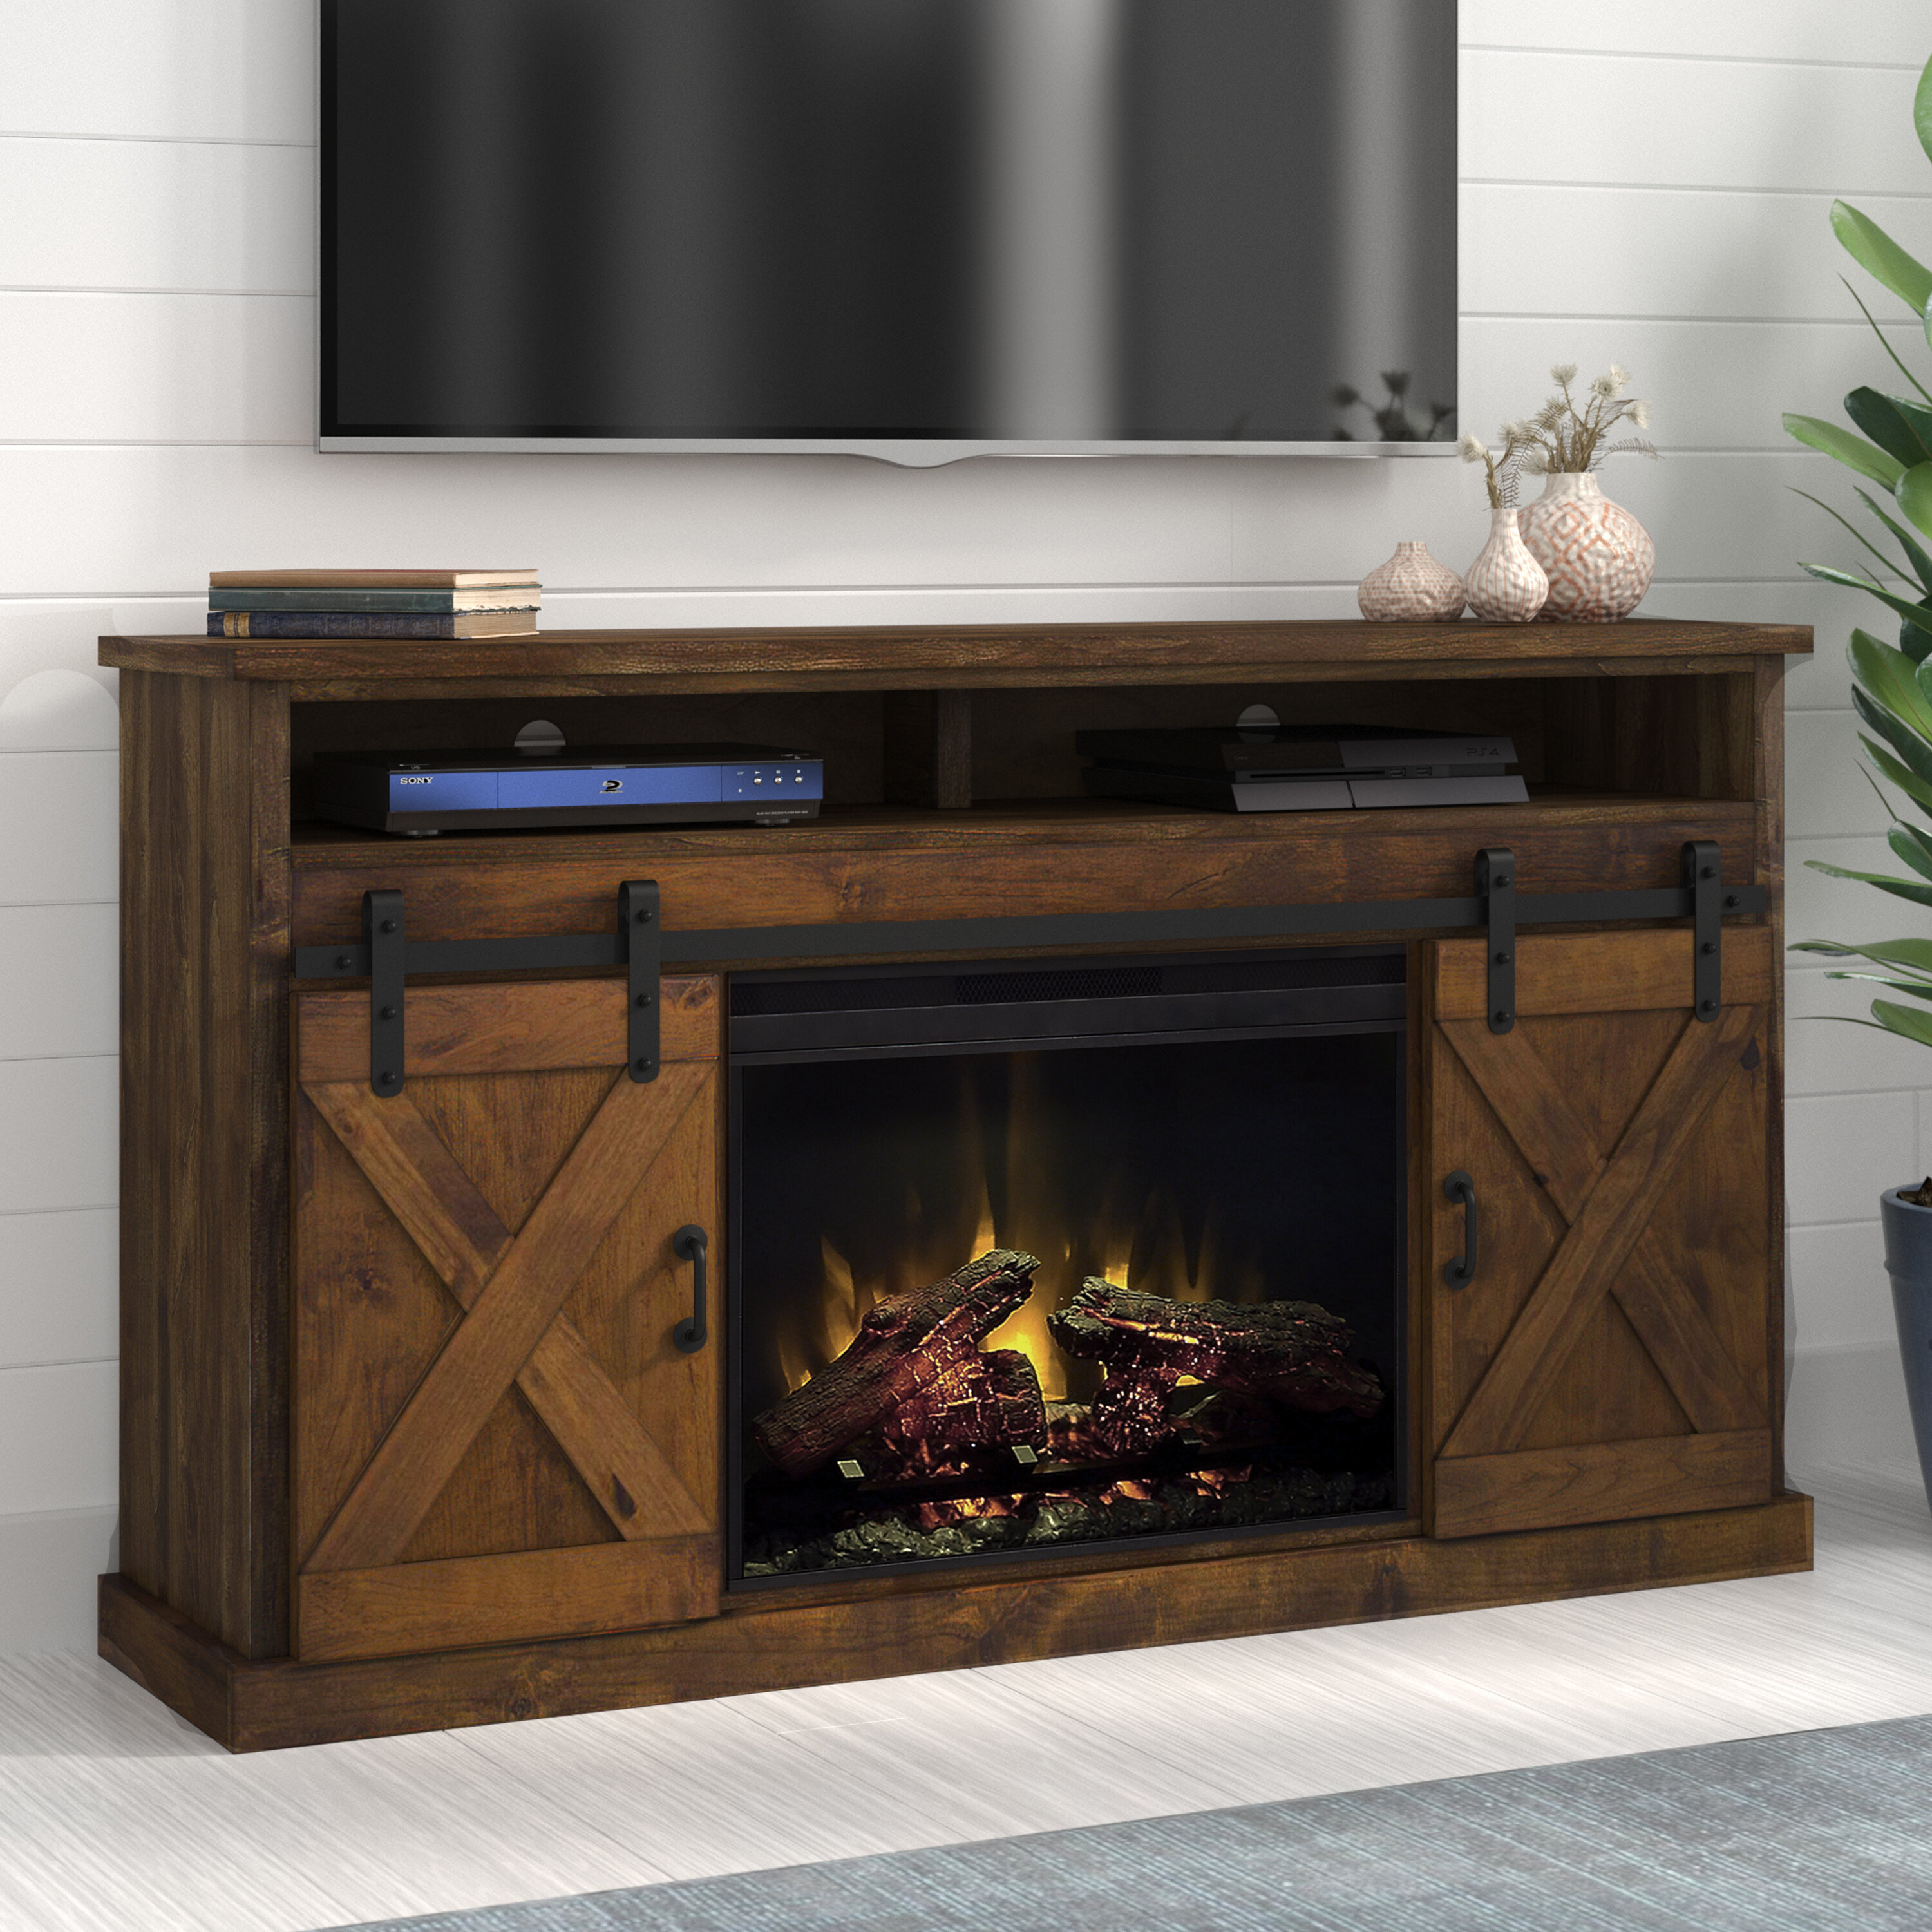 Loon Peak Pullman Tv Stand For Tvs Up To 66 With Electric Fireplace Included Reviews Wayfair